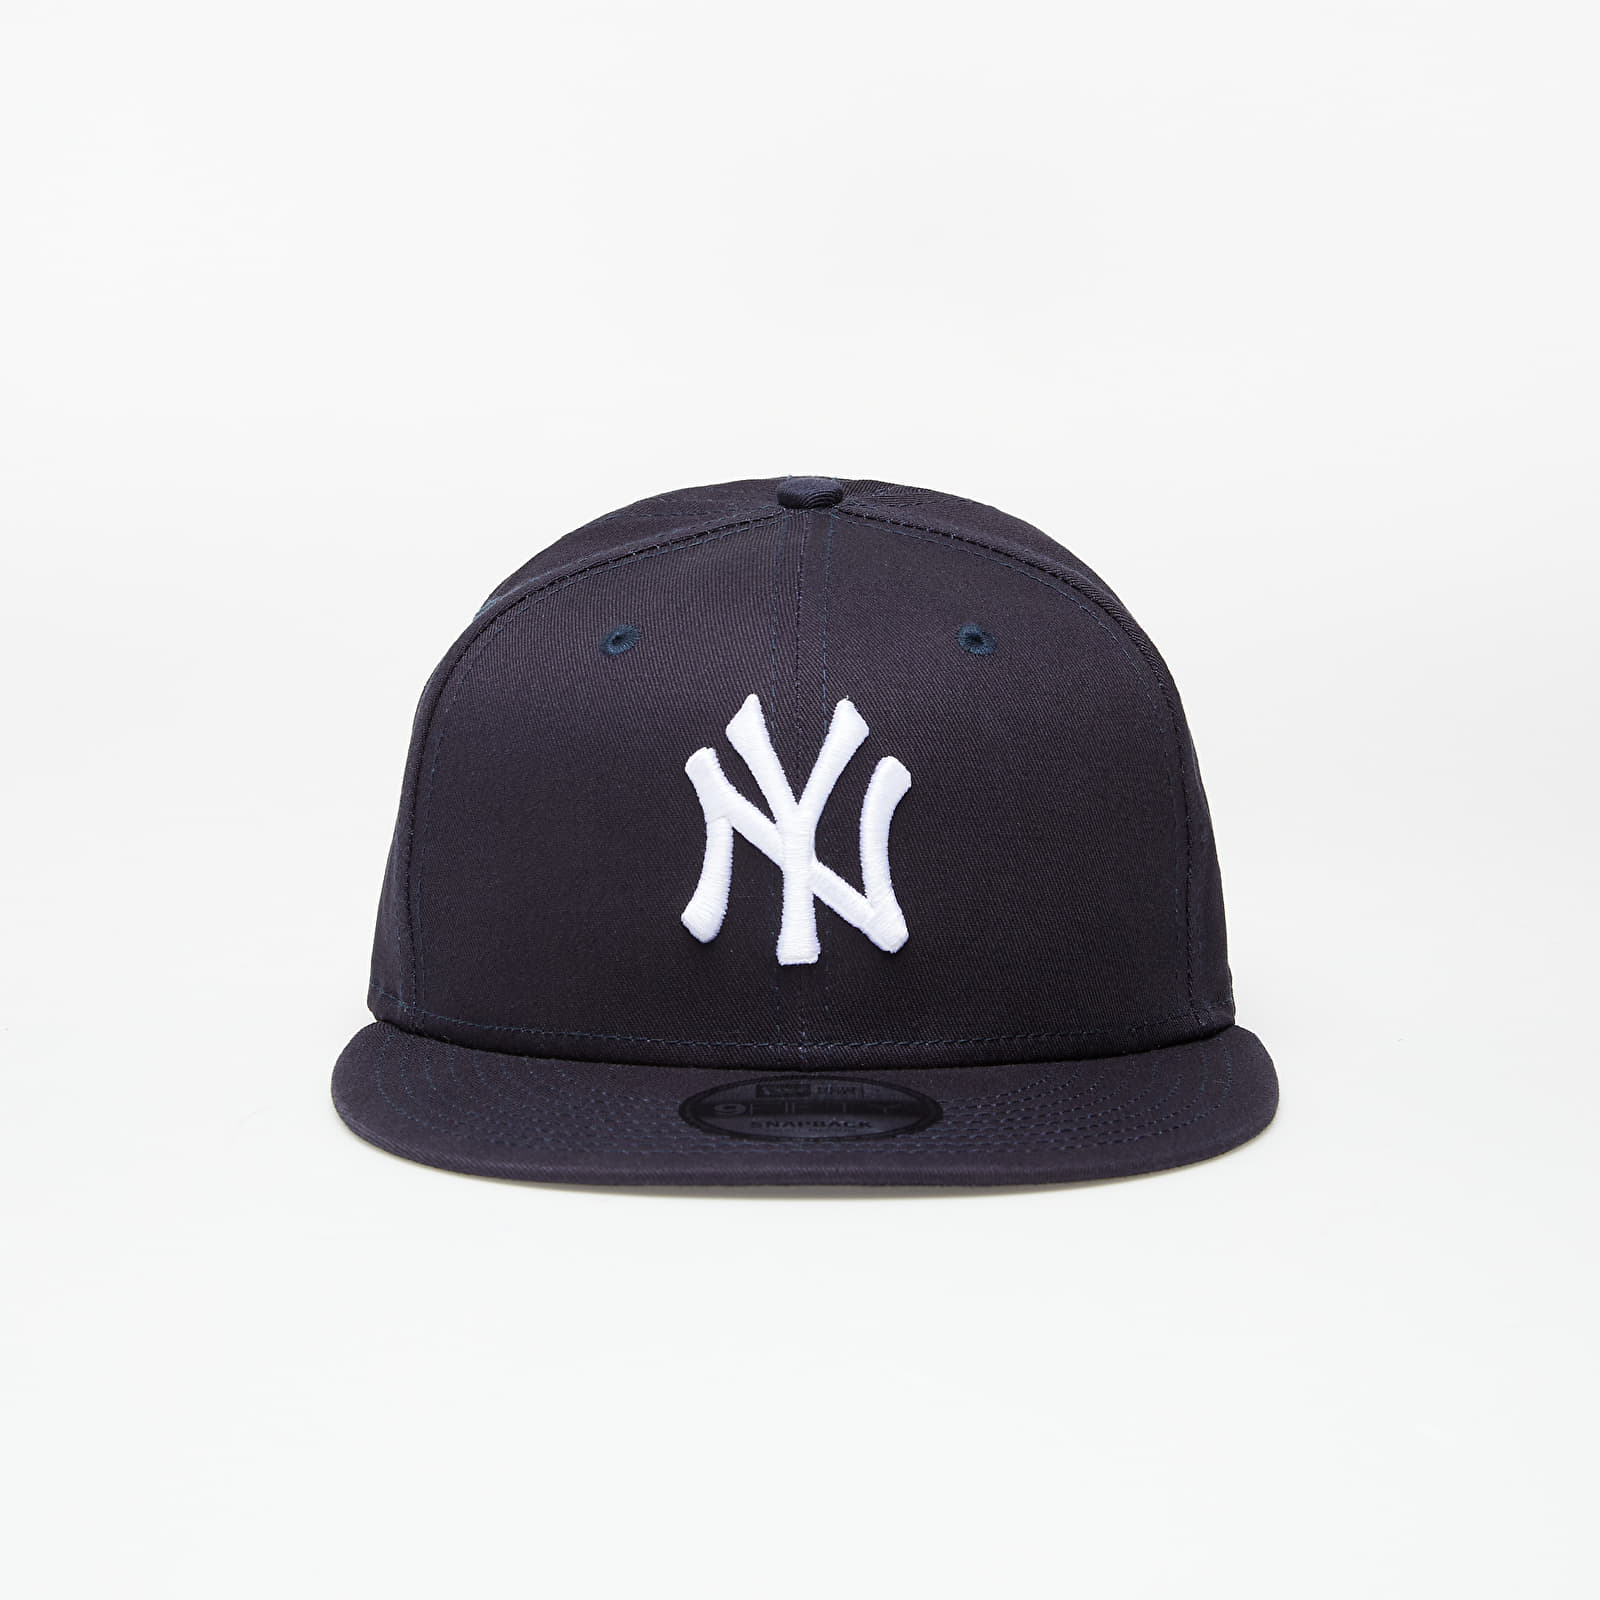 Caps New Era Cap 9Fifty Mlb 9Fifty New York Yankees Team